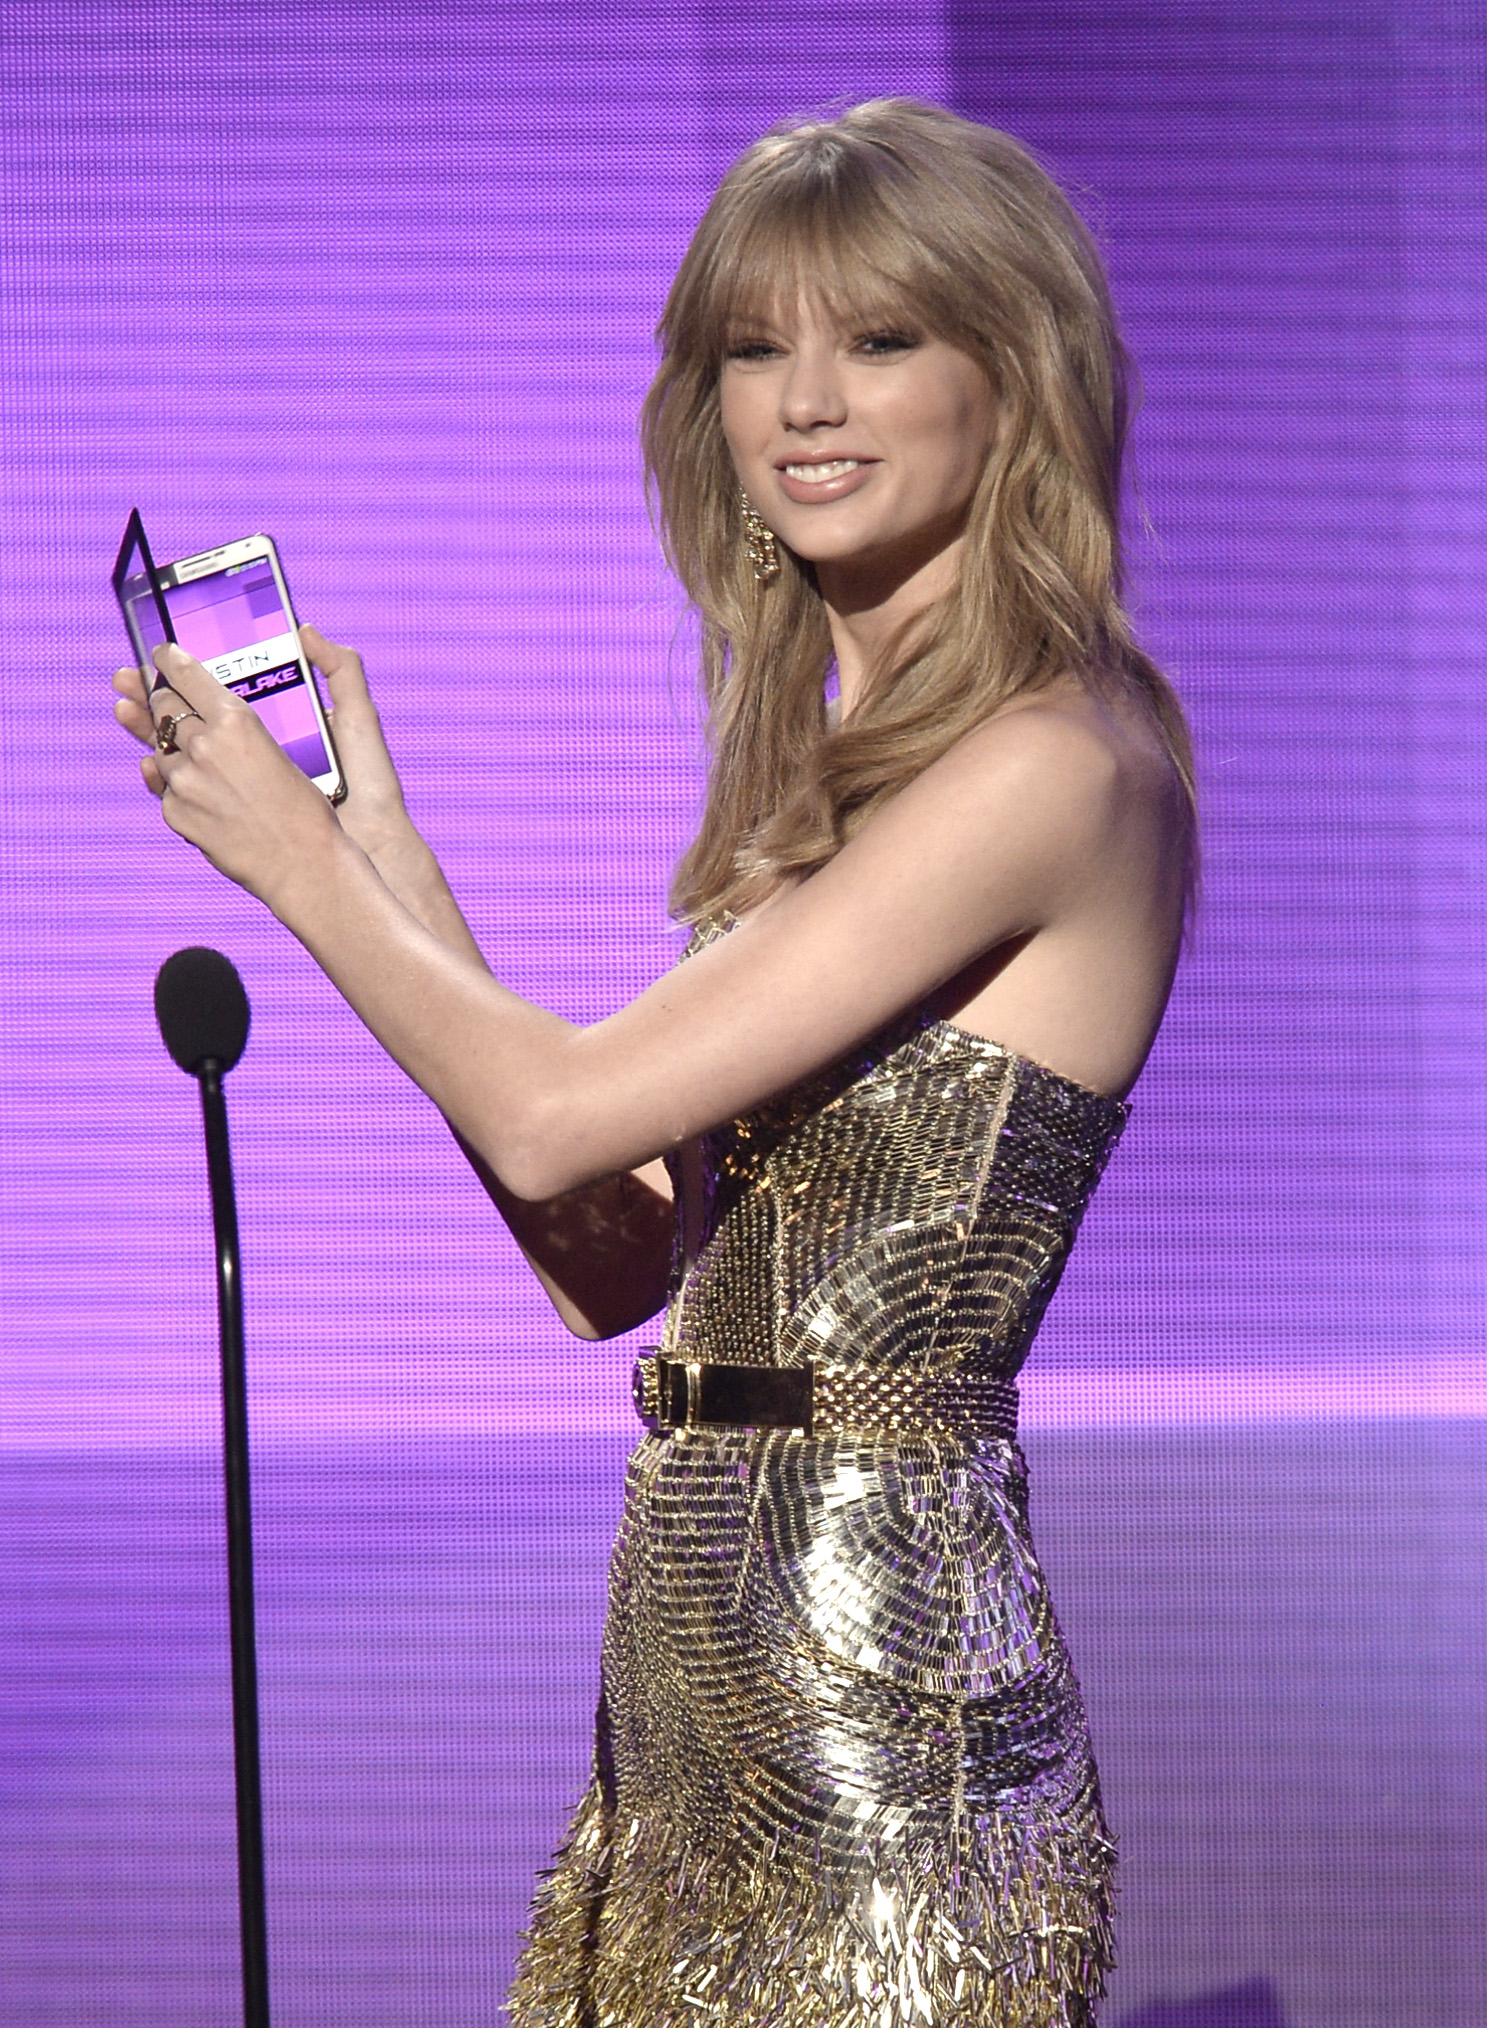 http://taylorpictures.net/albums/app/2013/americanmusicawards/048.jpg